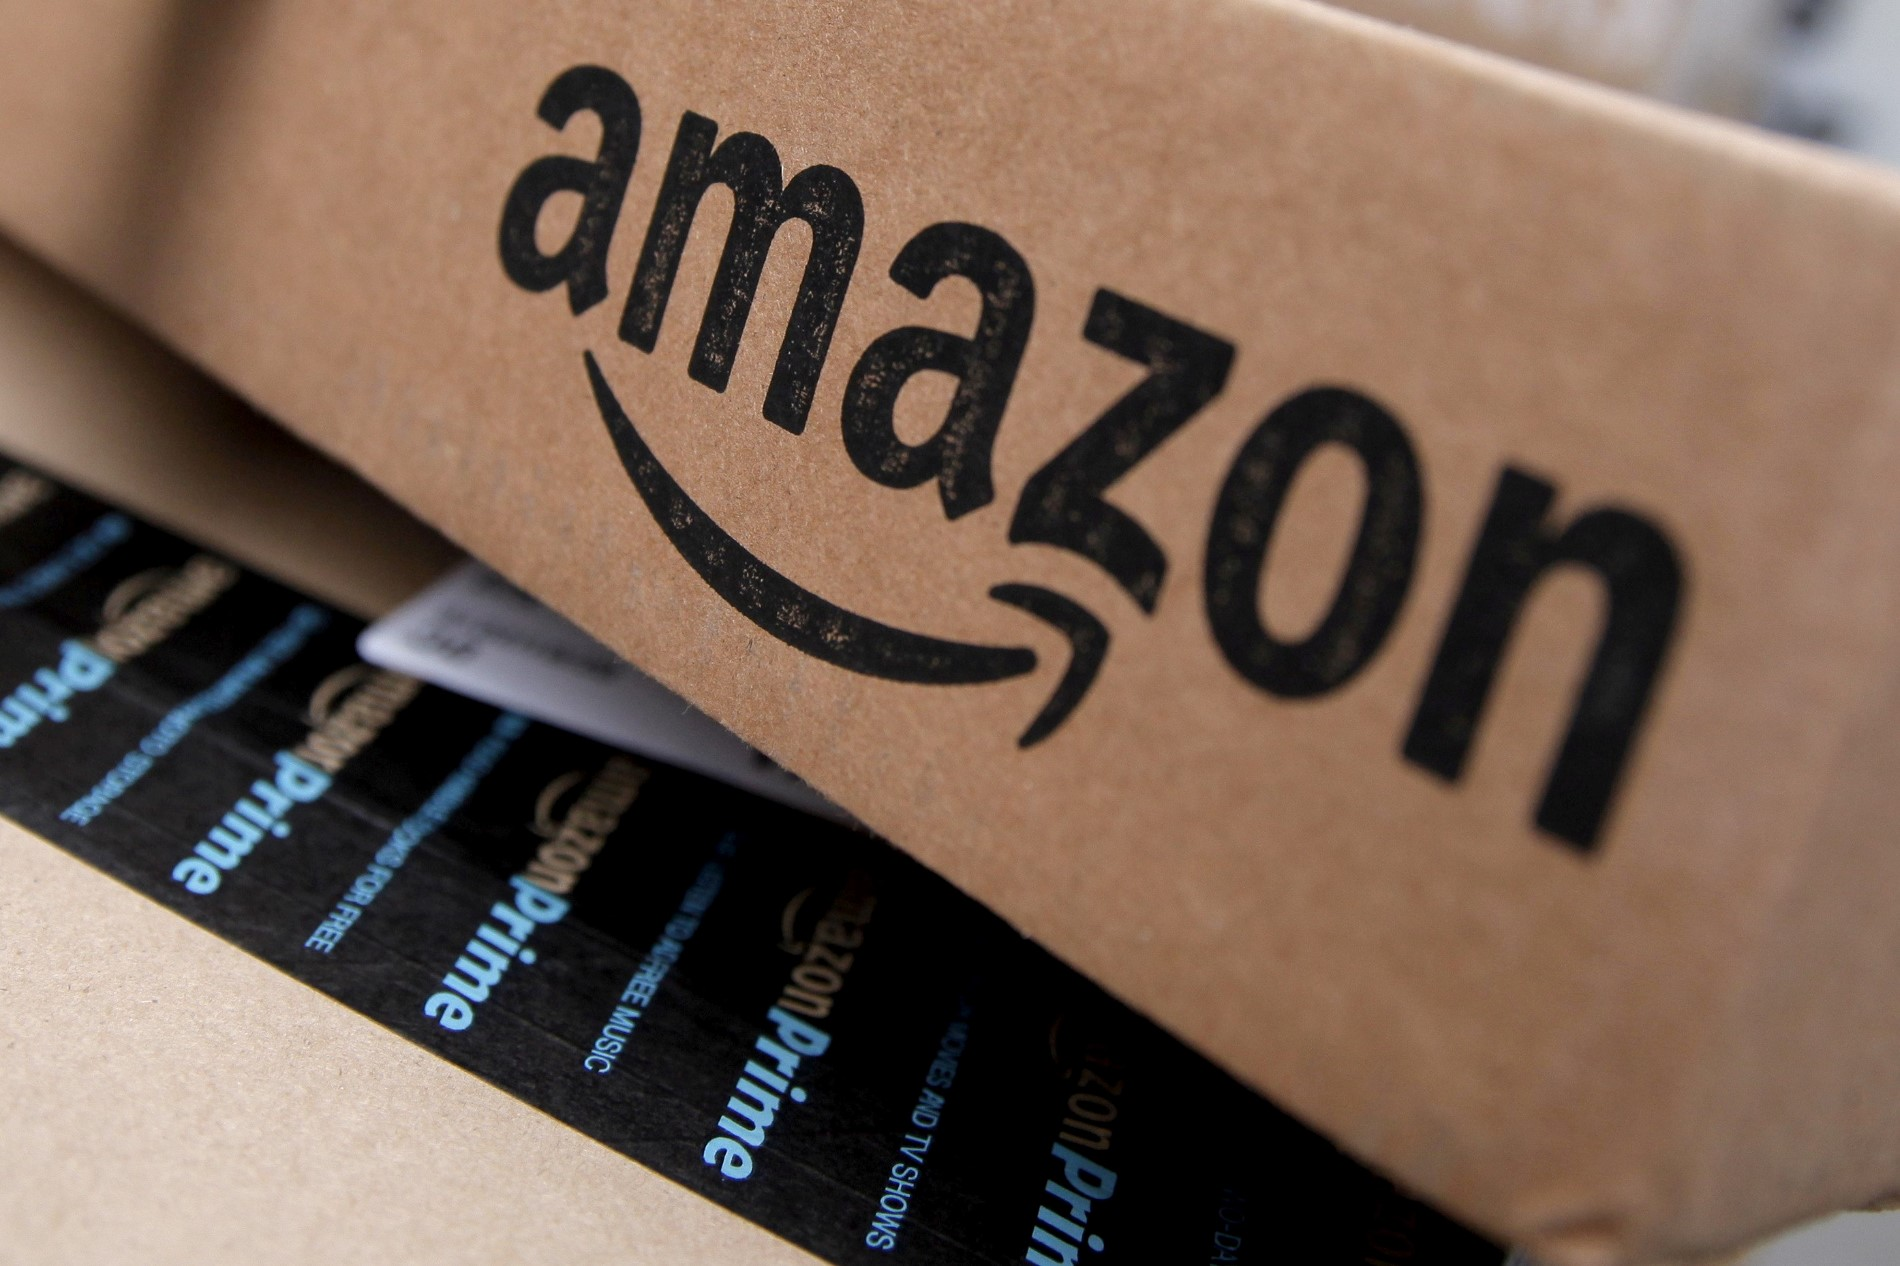 10 hidden tricks every Amazon shopper should know